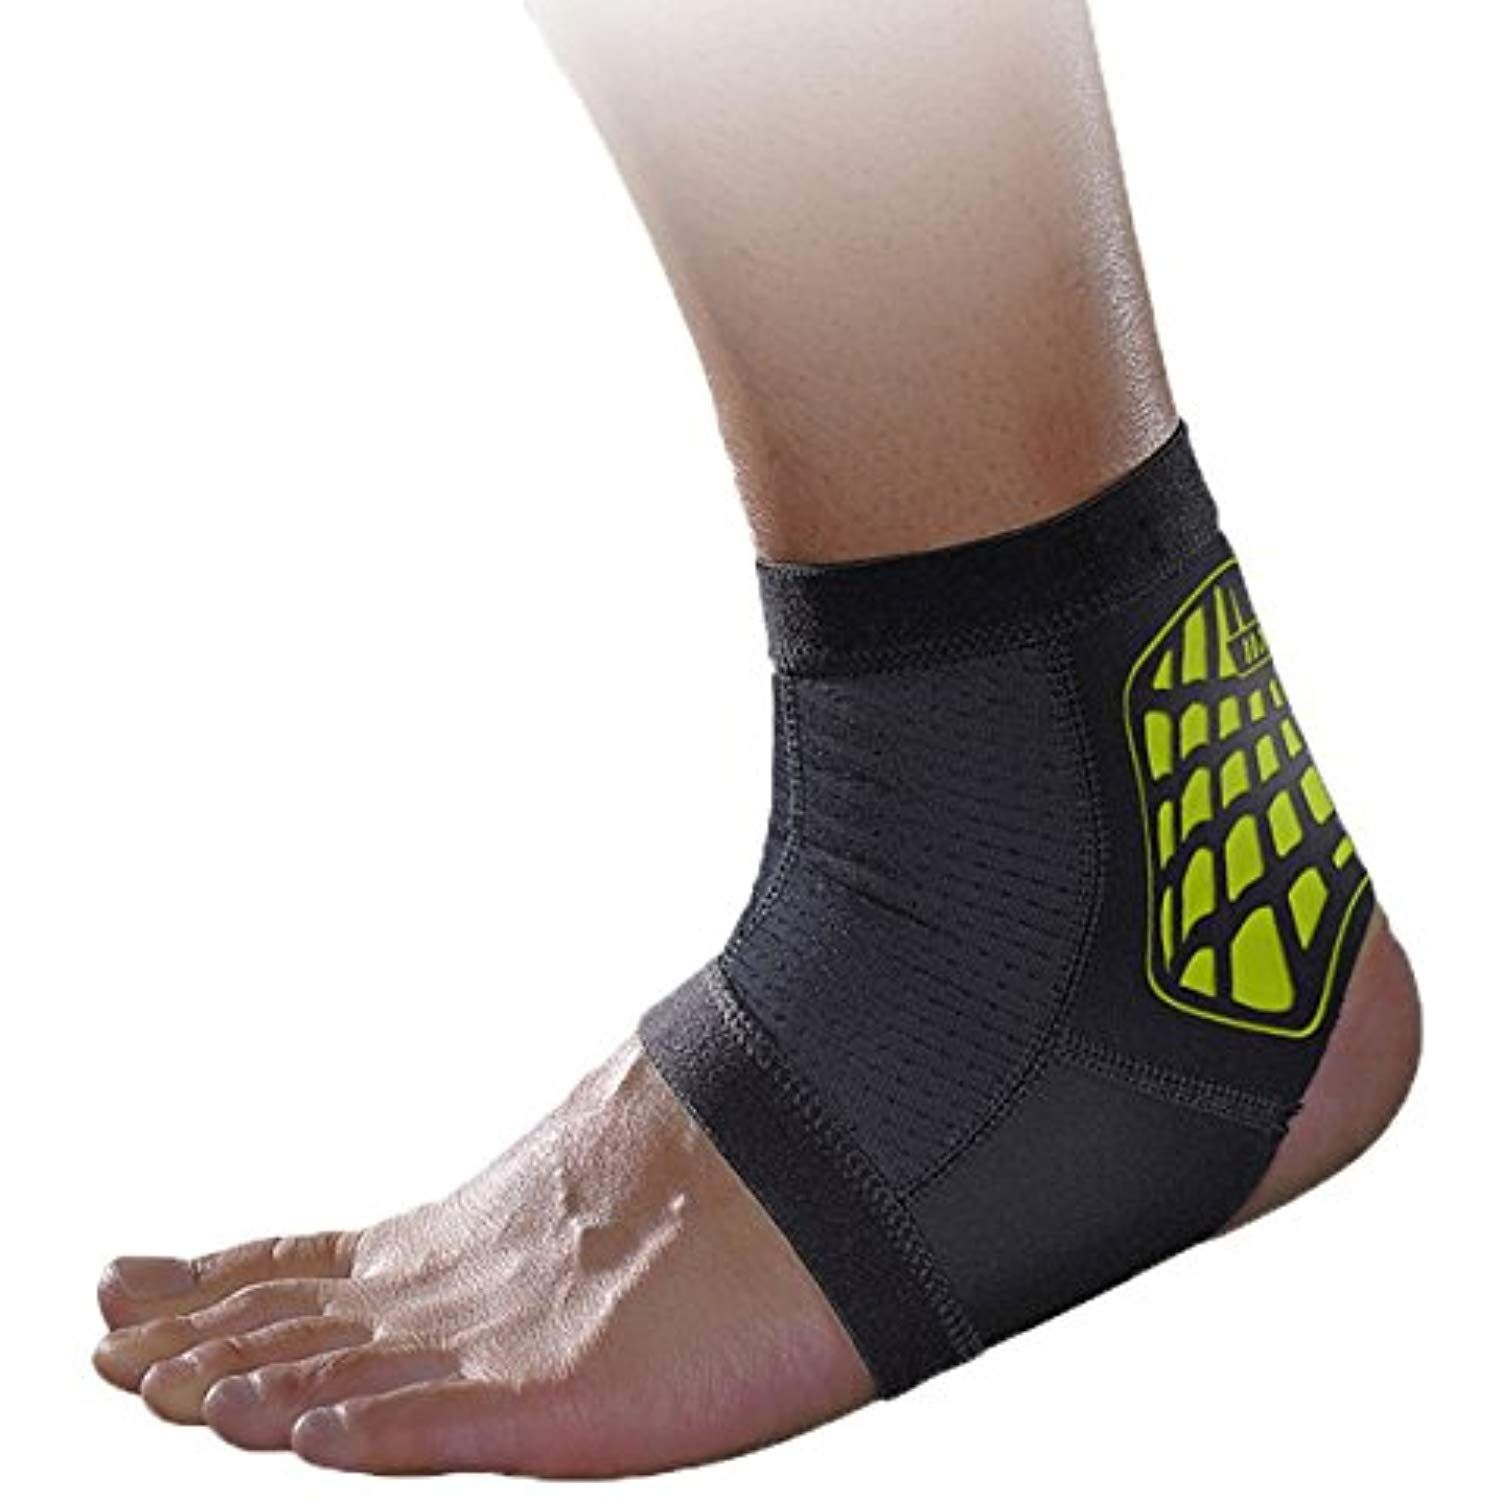 Panegy Compression Ankle Support Sleeve Reduce Muscle Fatigu Soft And Breathable Foot Brace For Running Badminton Read Ankle Support Breathable Sports Team